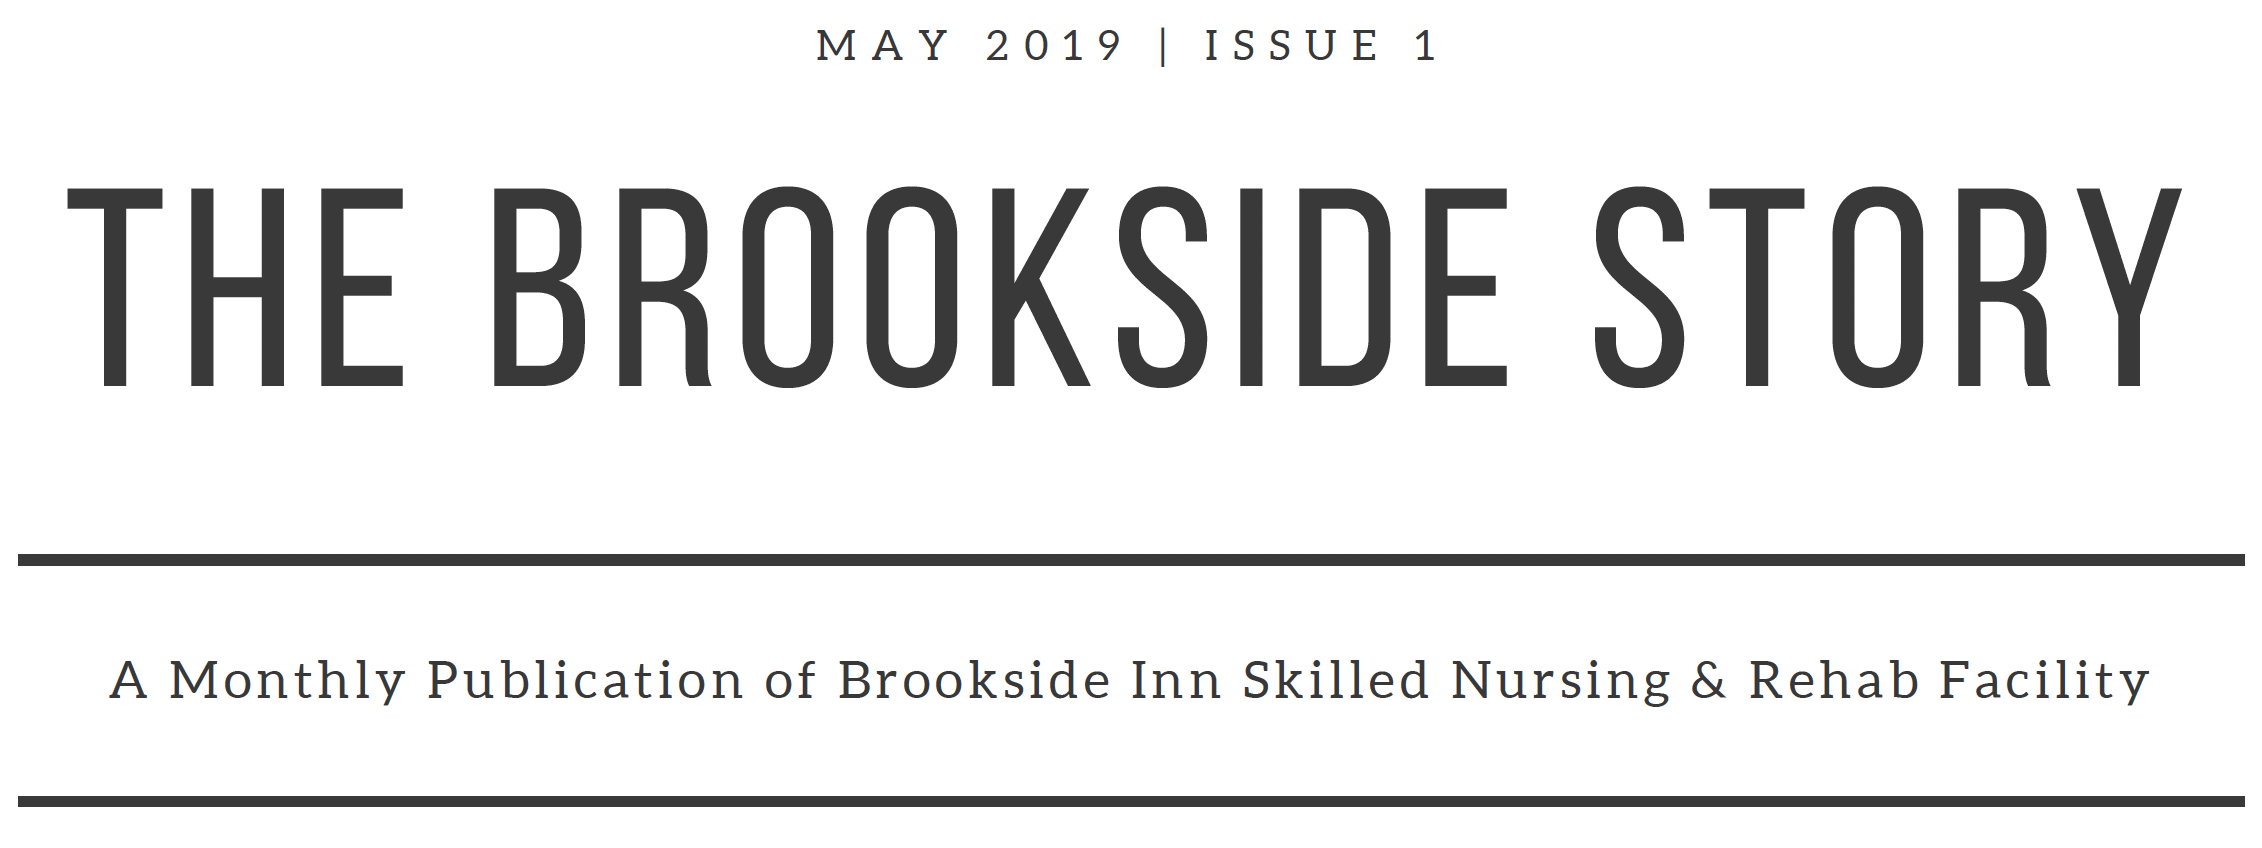 The Brookside Story May 2019 Issue 1 - A monthly publication of Brookside Inn Skilled Nursing & Rehab Facility